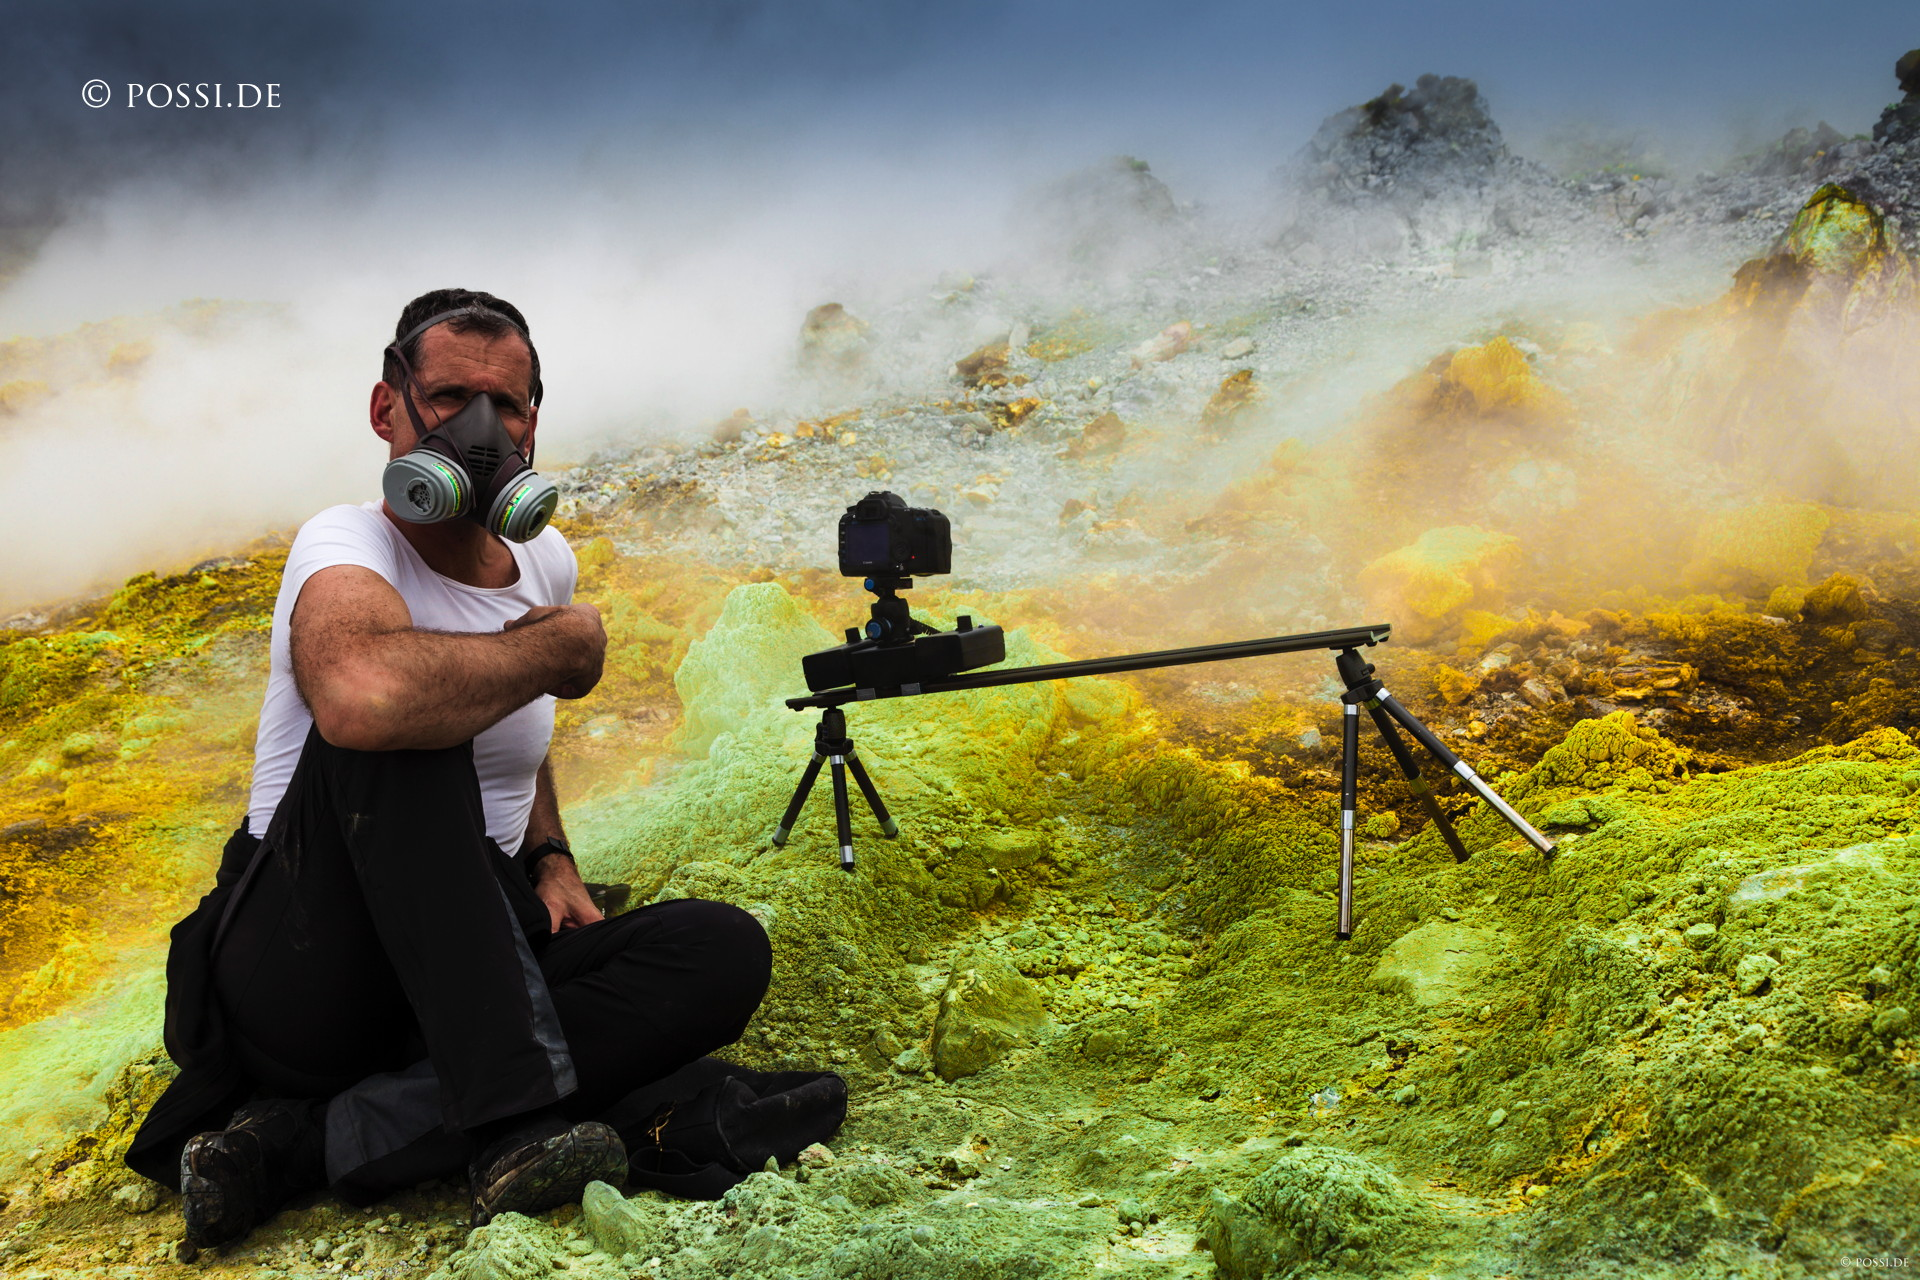 I didn't had to think much what camera brand to choose. I inherited the Canon 5D MKII from y husband together with a fine arsenal of lenses. Here in the crater of the Papandayan volcano on Java, Indonesia. While taking the time-lapse we were desperately hoping that the acid vapors would not eat up our gear (yes, the camera survived).